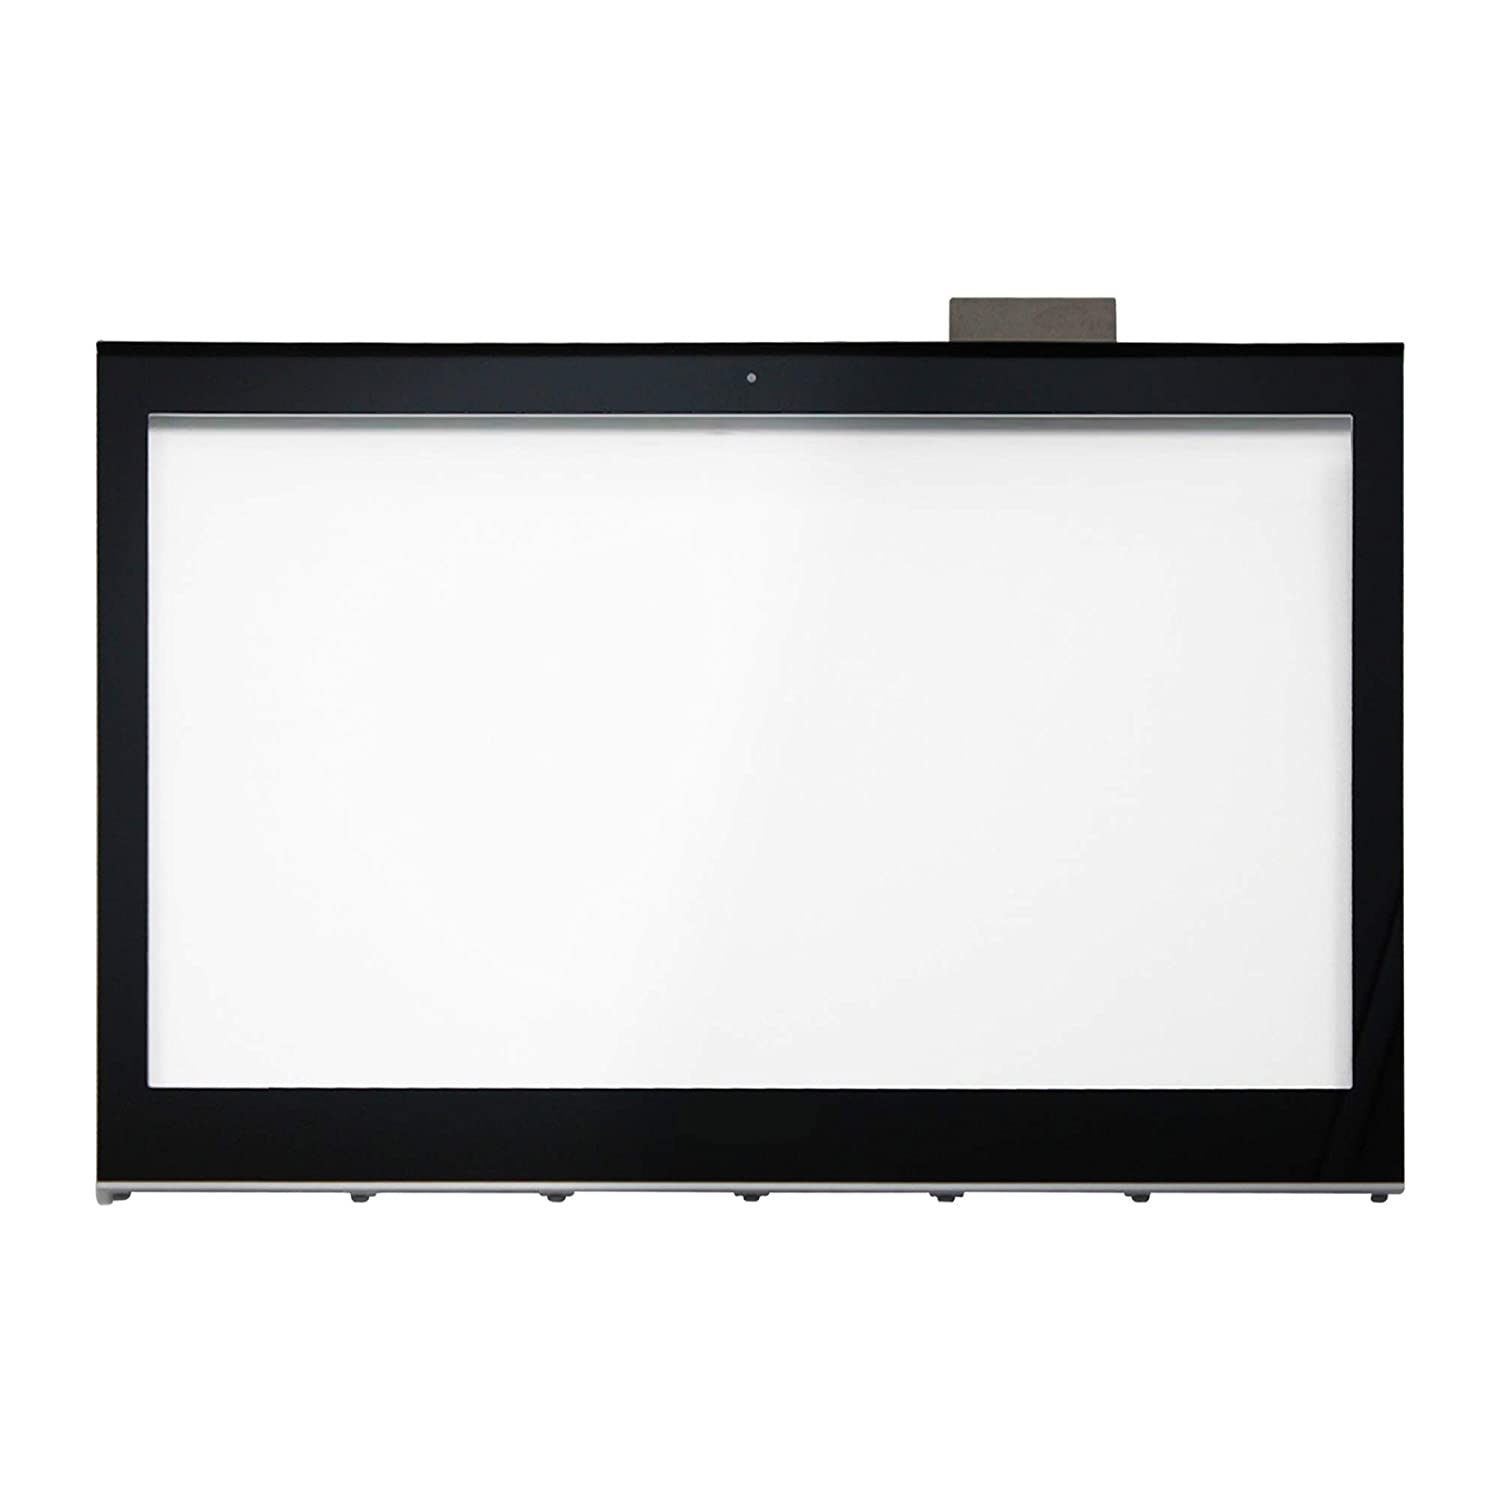 LCDOLED Compatible 15.6 inch Touch Screen Glass Digitizer + Bezel Replacement for Sony VAIO T15 SVT15 SVT151A11L SVT15115CXS SVT15112CXS